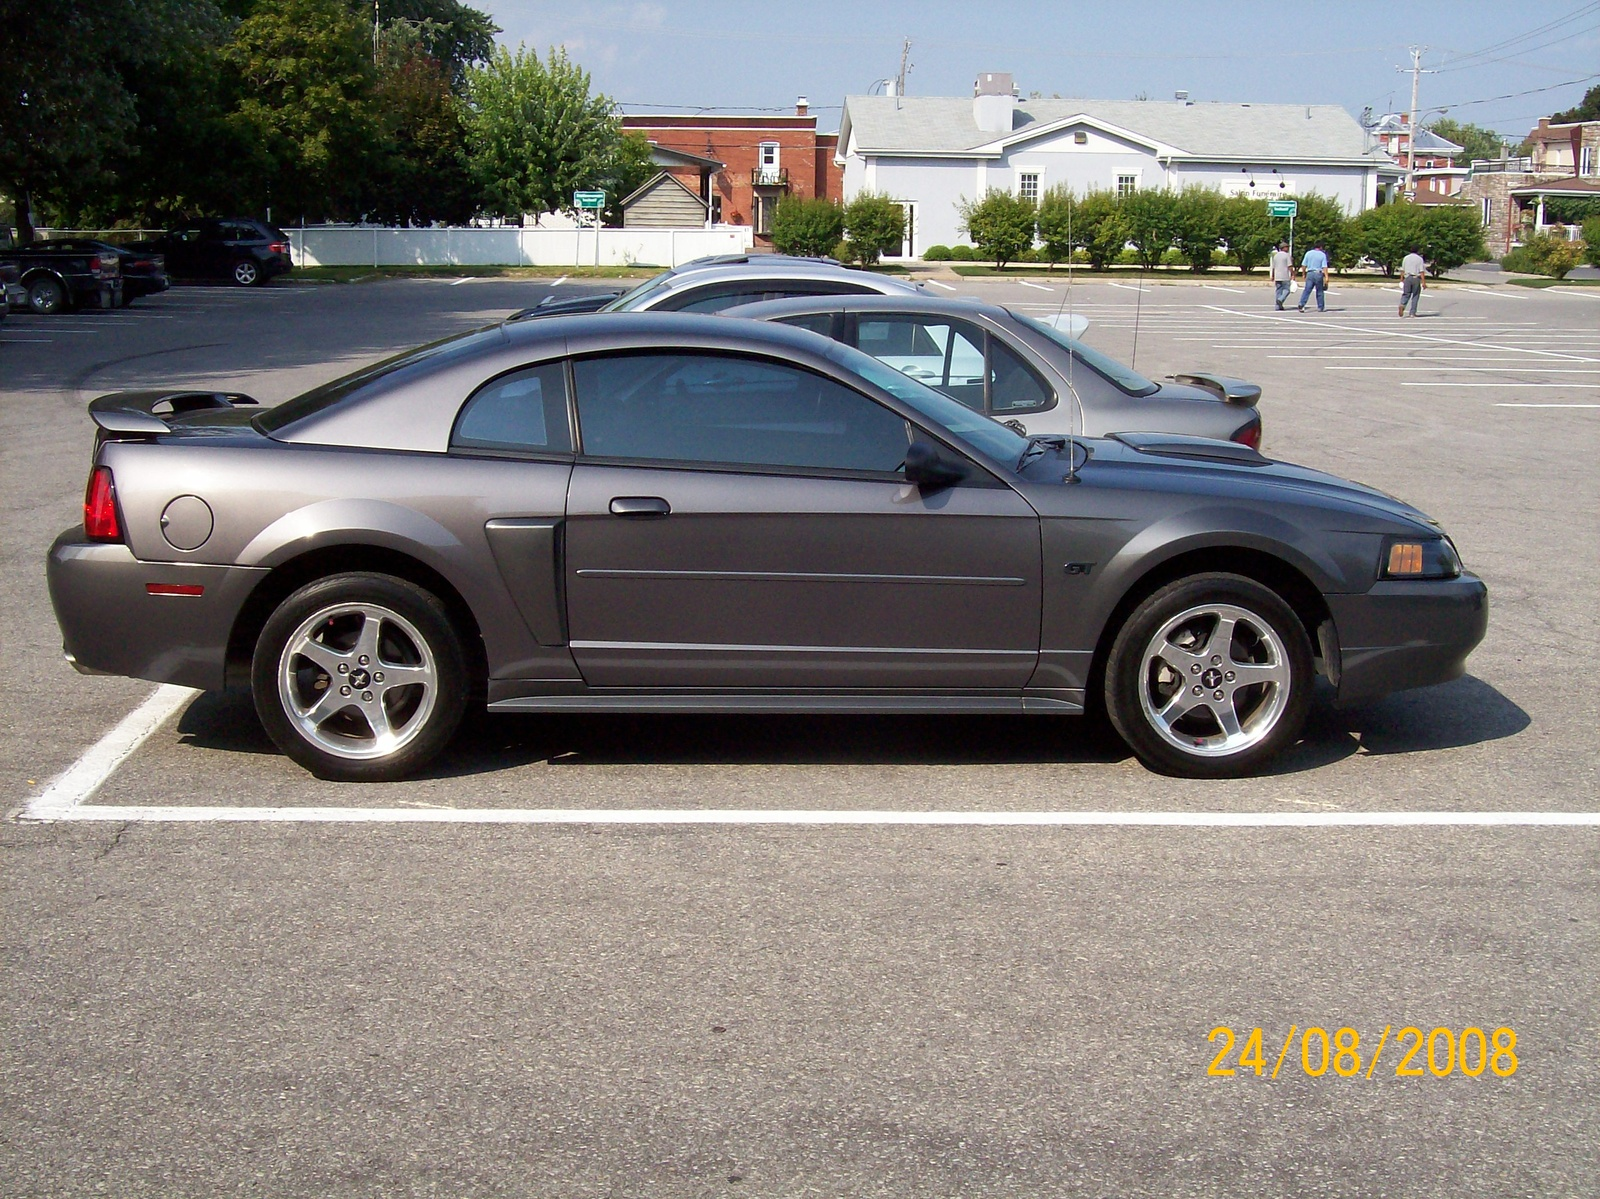 1997 Svt Cobra Specs - New Car Release Date and Review ...